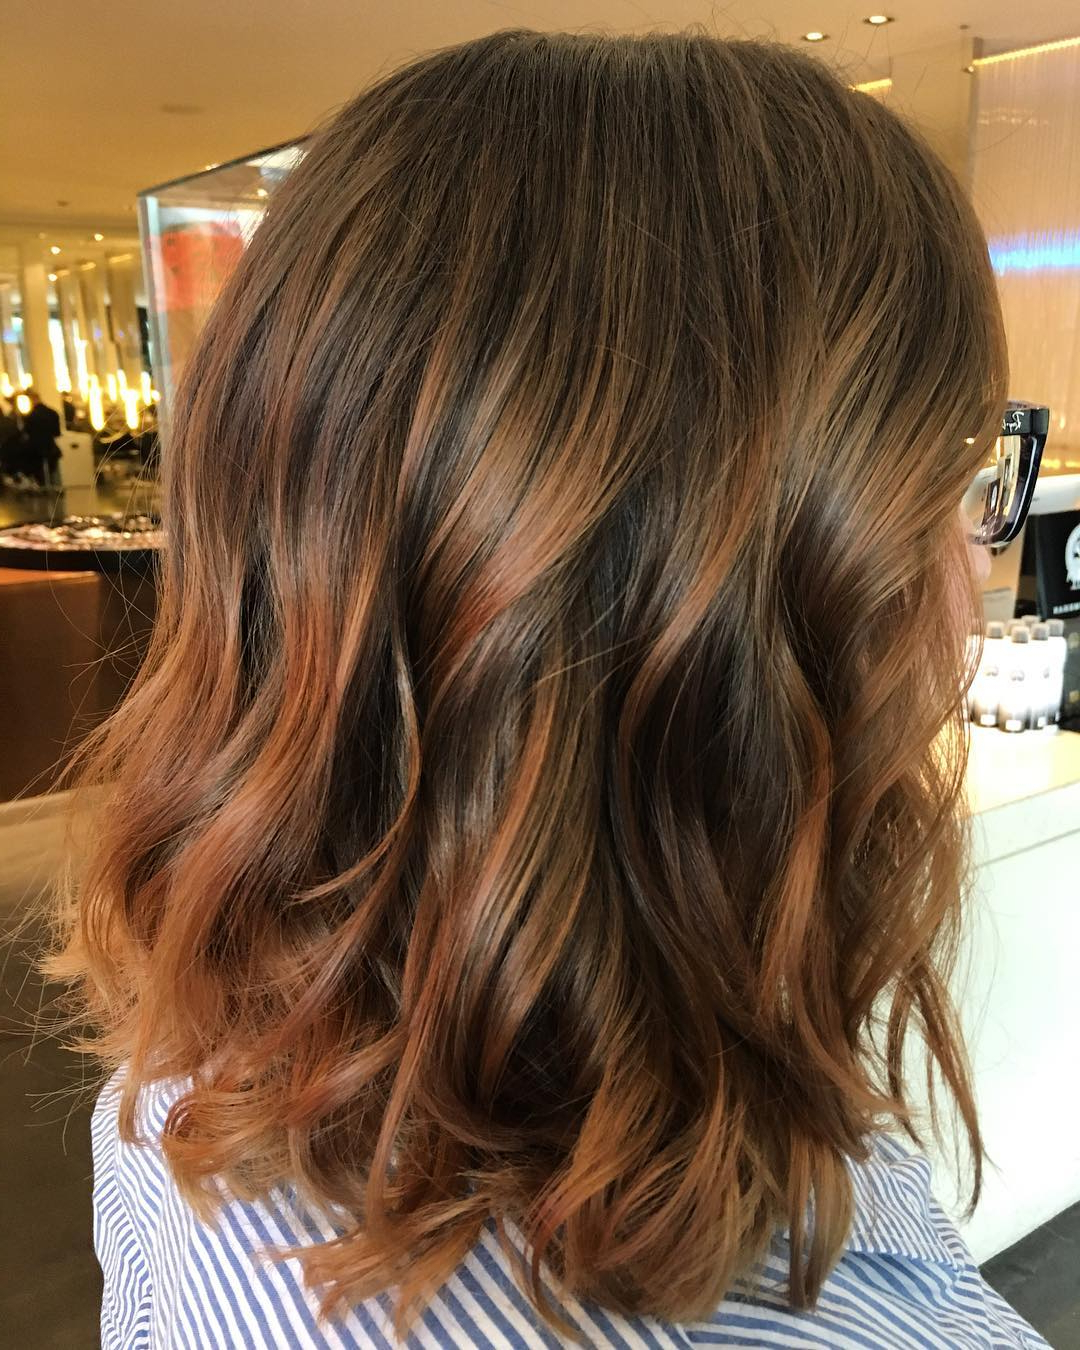 25 Exciting Medium Length Layered Haircuts – Popular Haircuts Throughout Trendy Medium Haircuts With Red And Blonde Highlights (View 6 of 20)